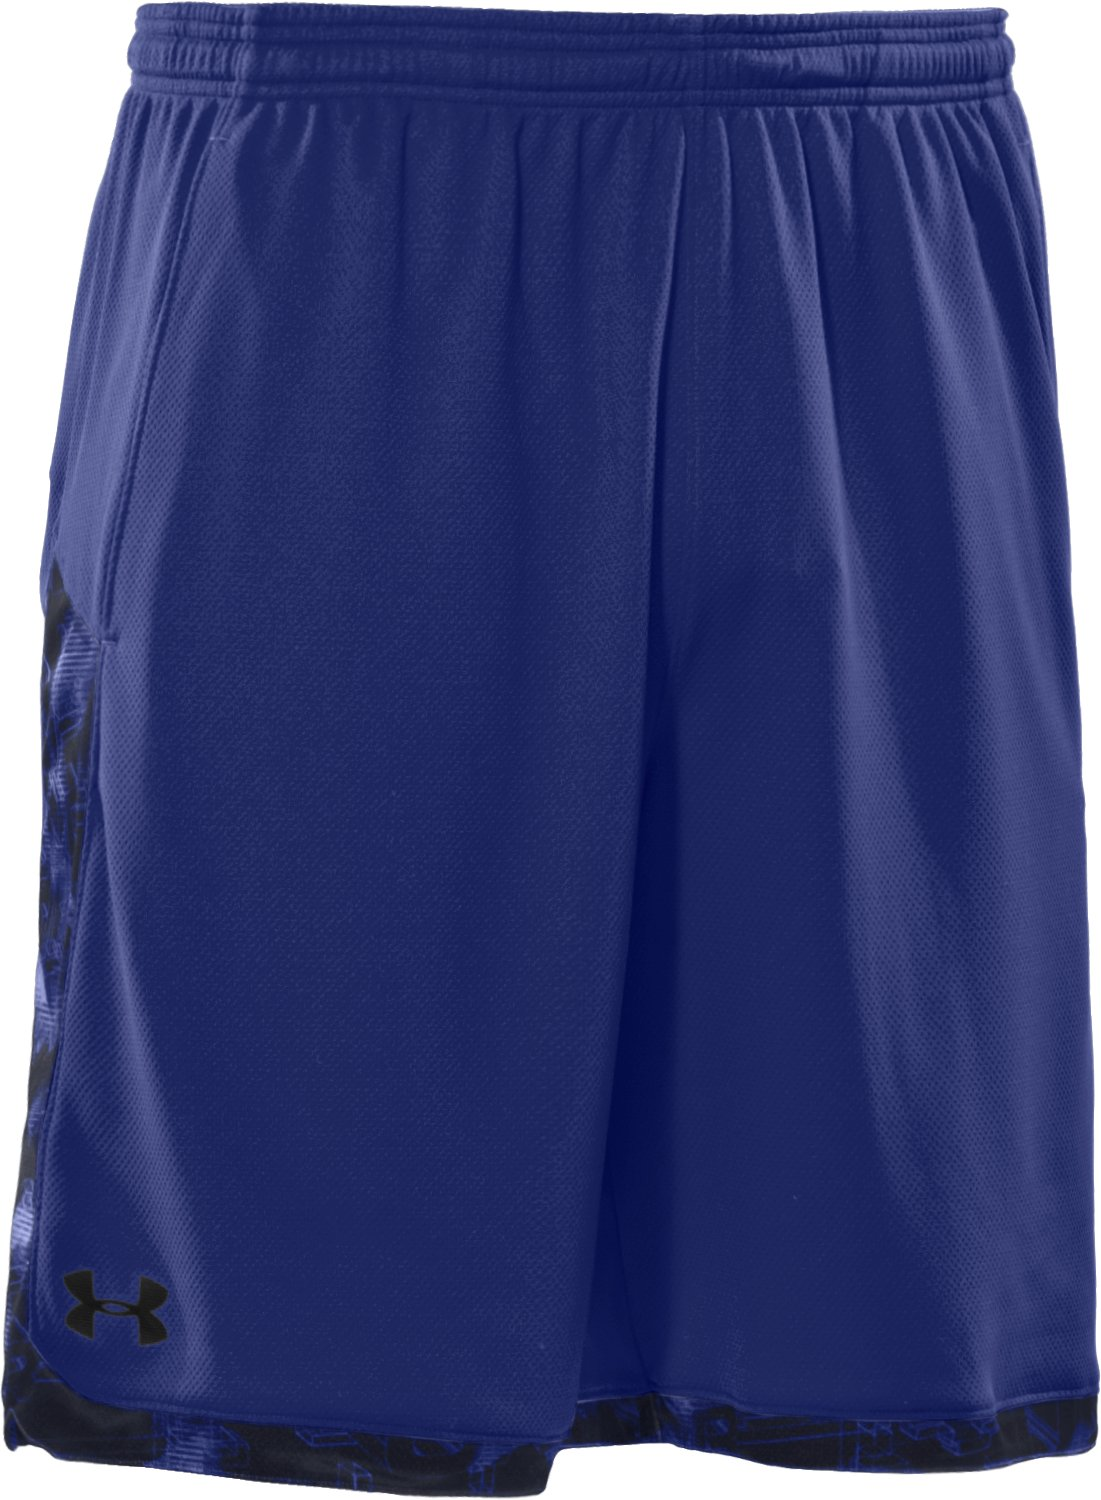 "Men's UA Showprint 10"" Shorts, Bauhaus Blue,"